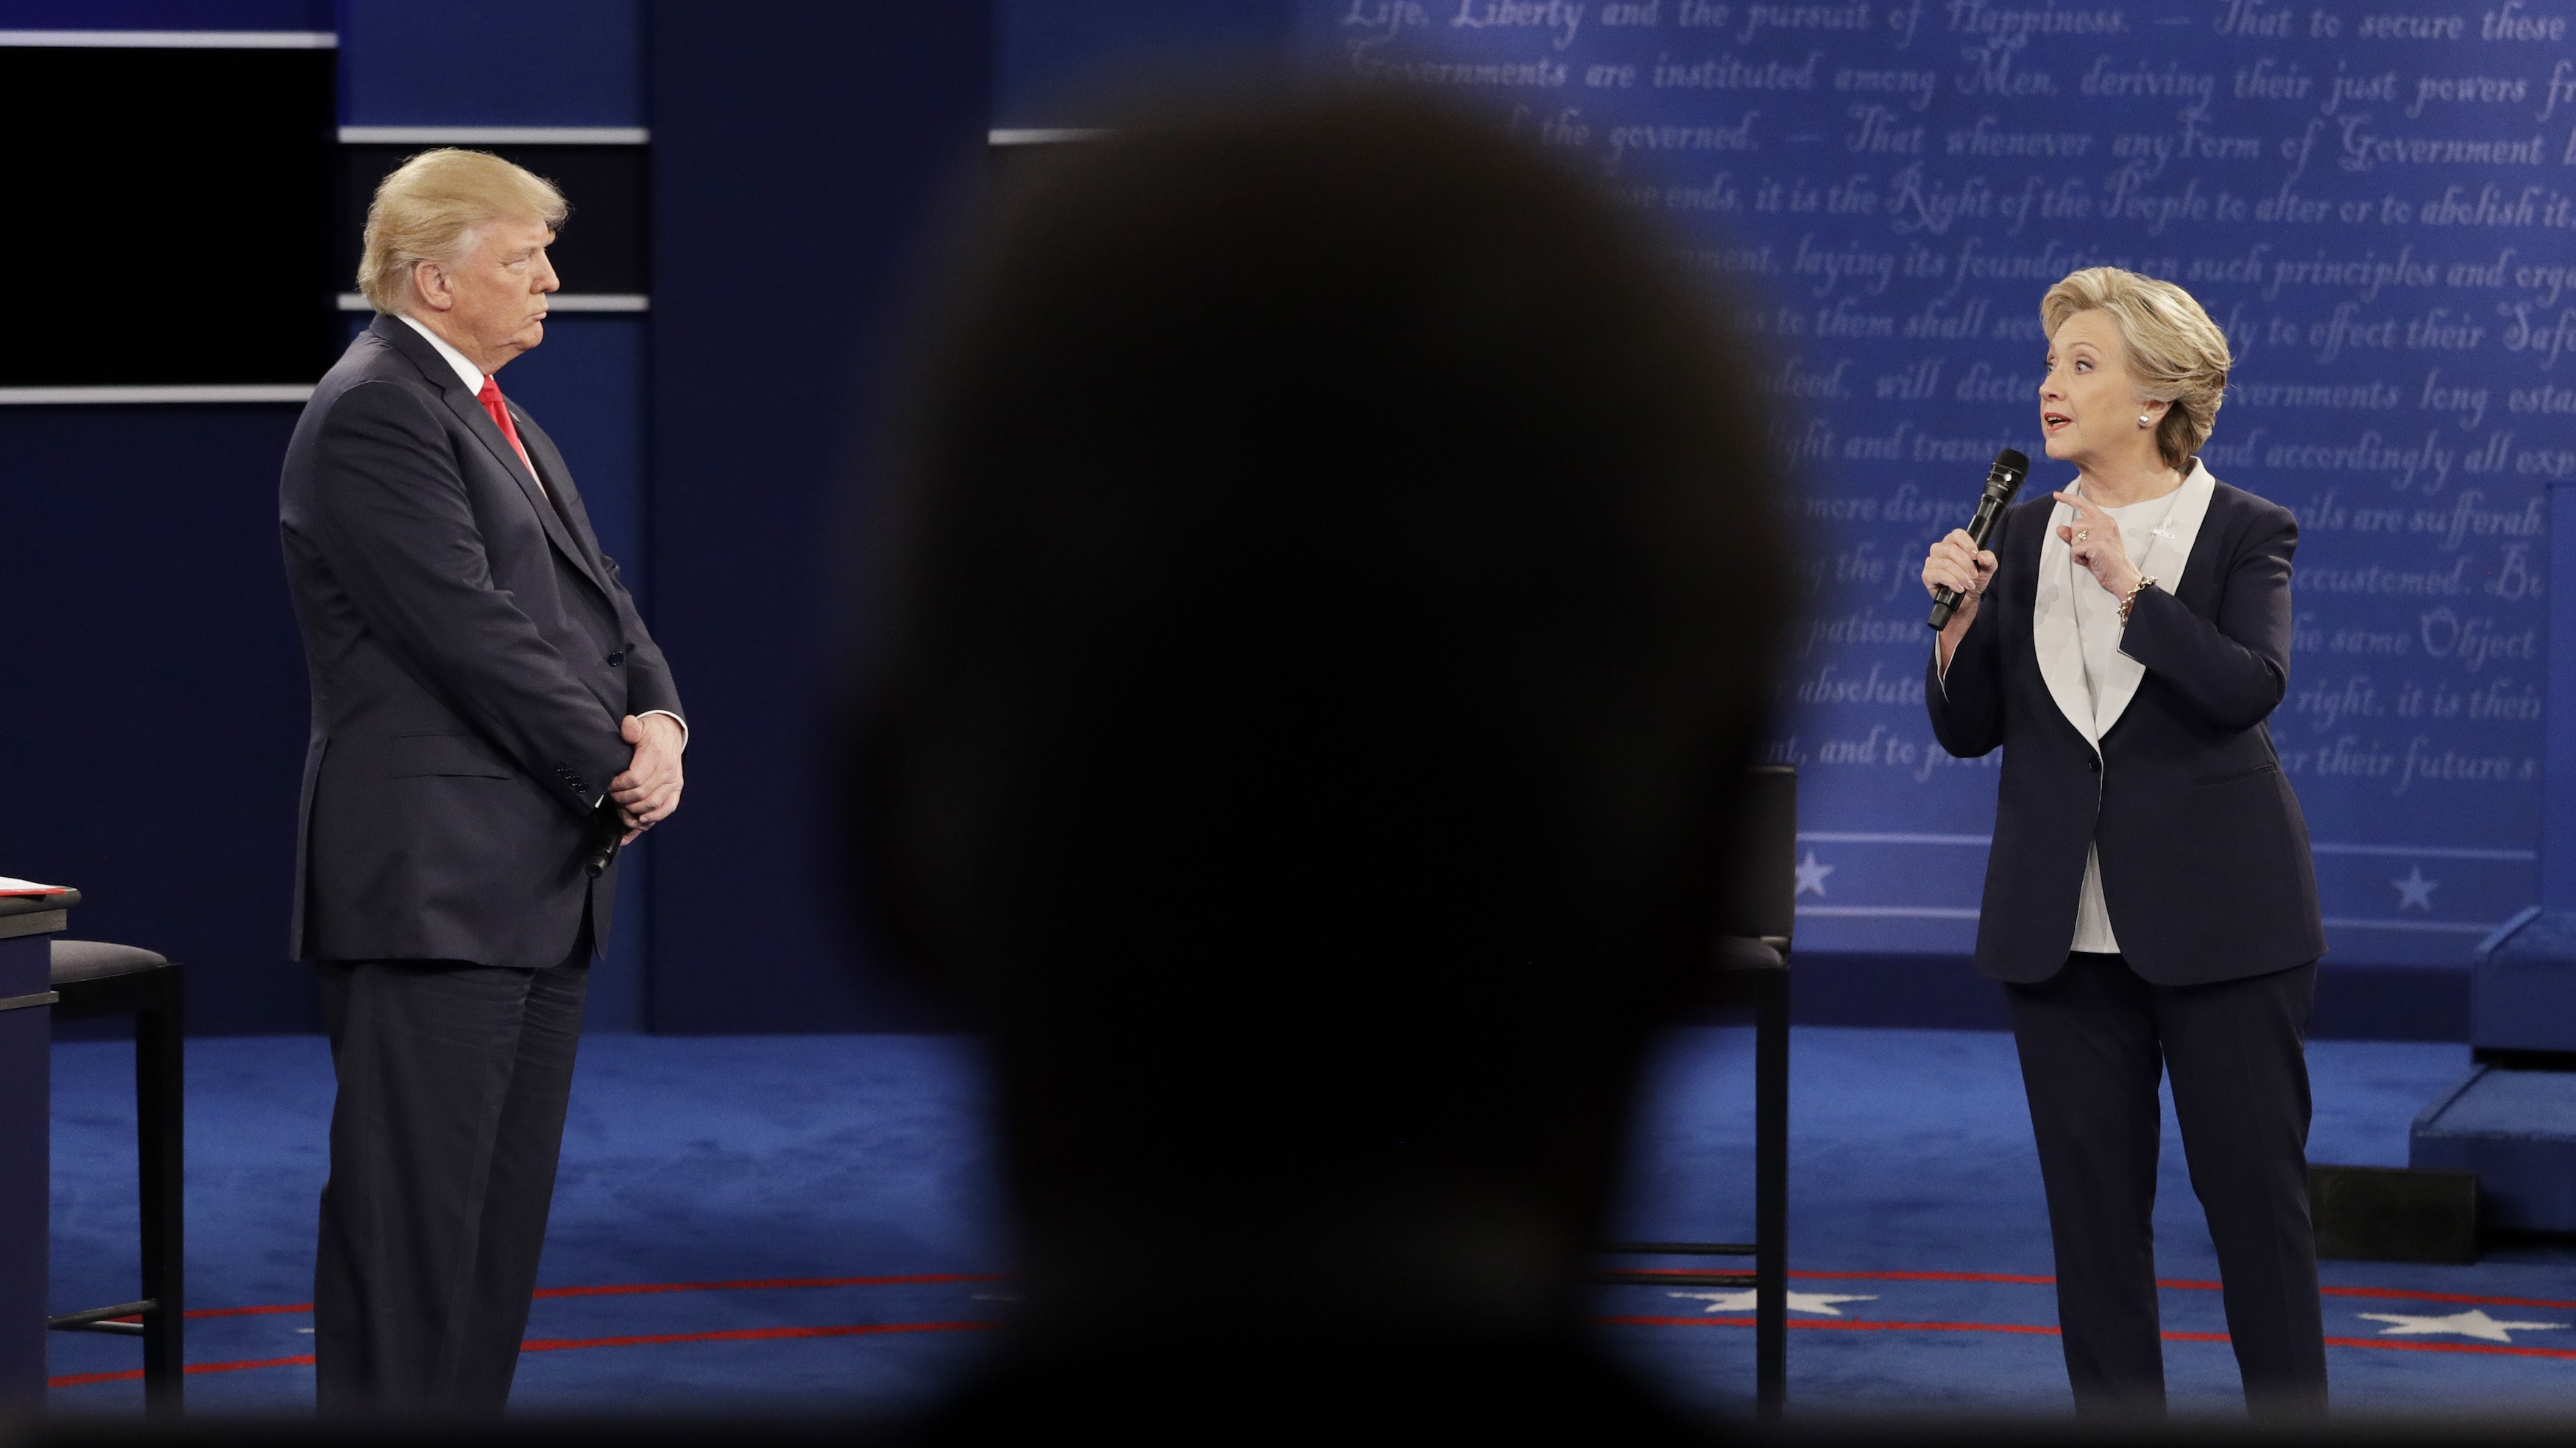 Has this election gotten too nasty for a third debate to change any minds?